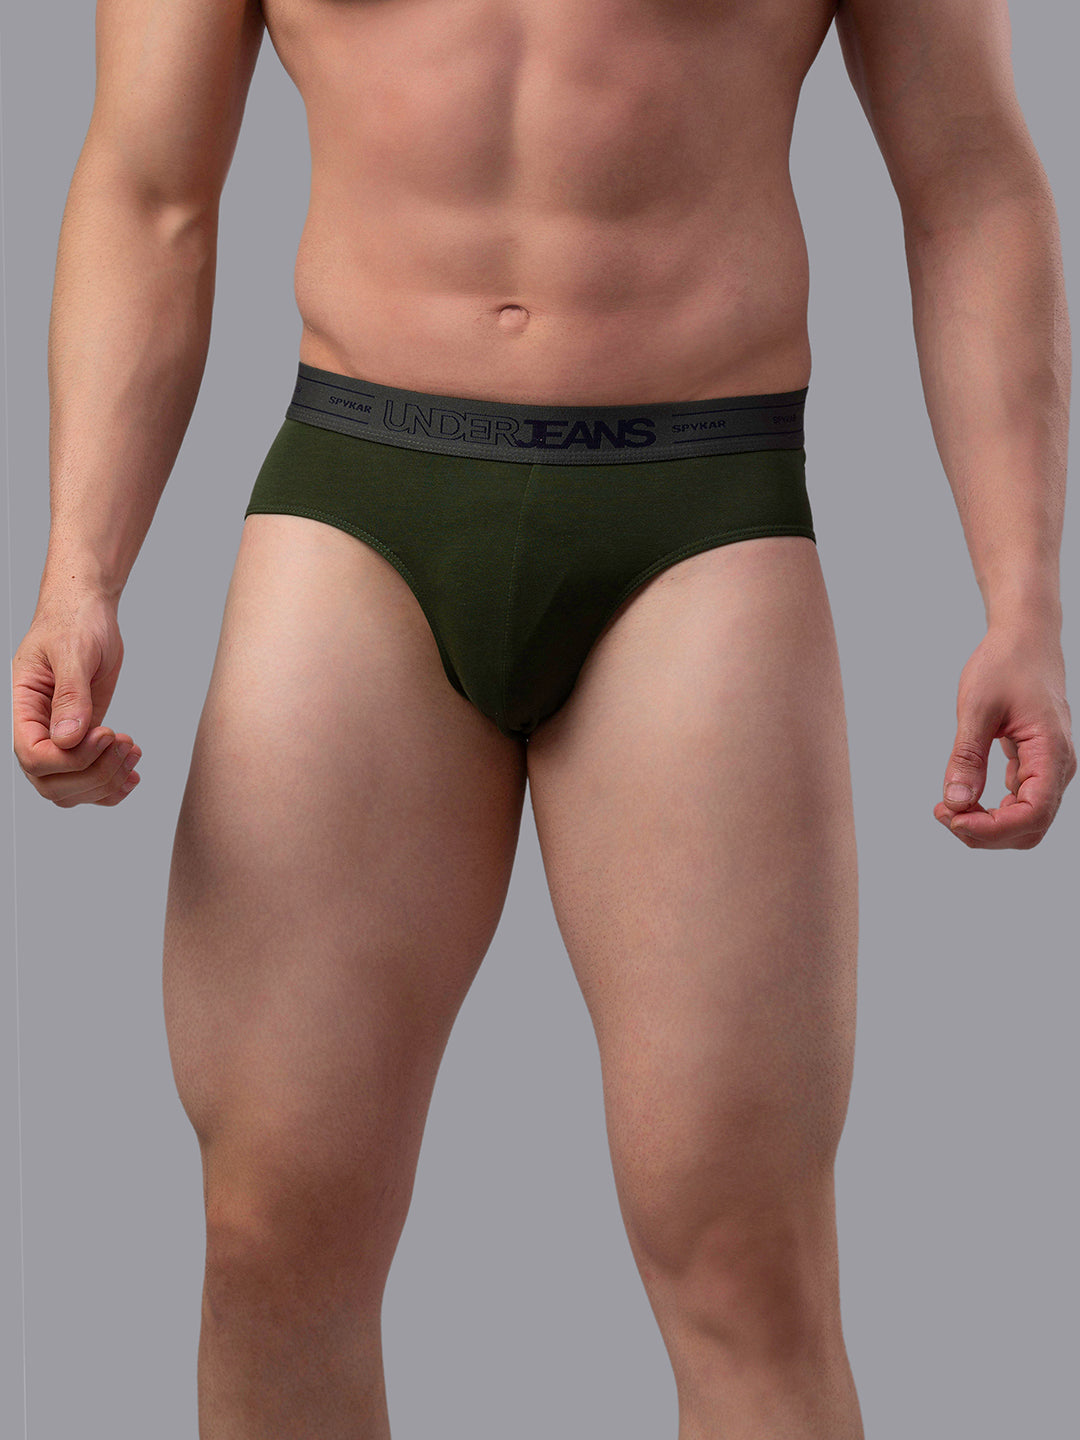 Underjeans Olive Cotton Brief - Pack of 2